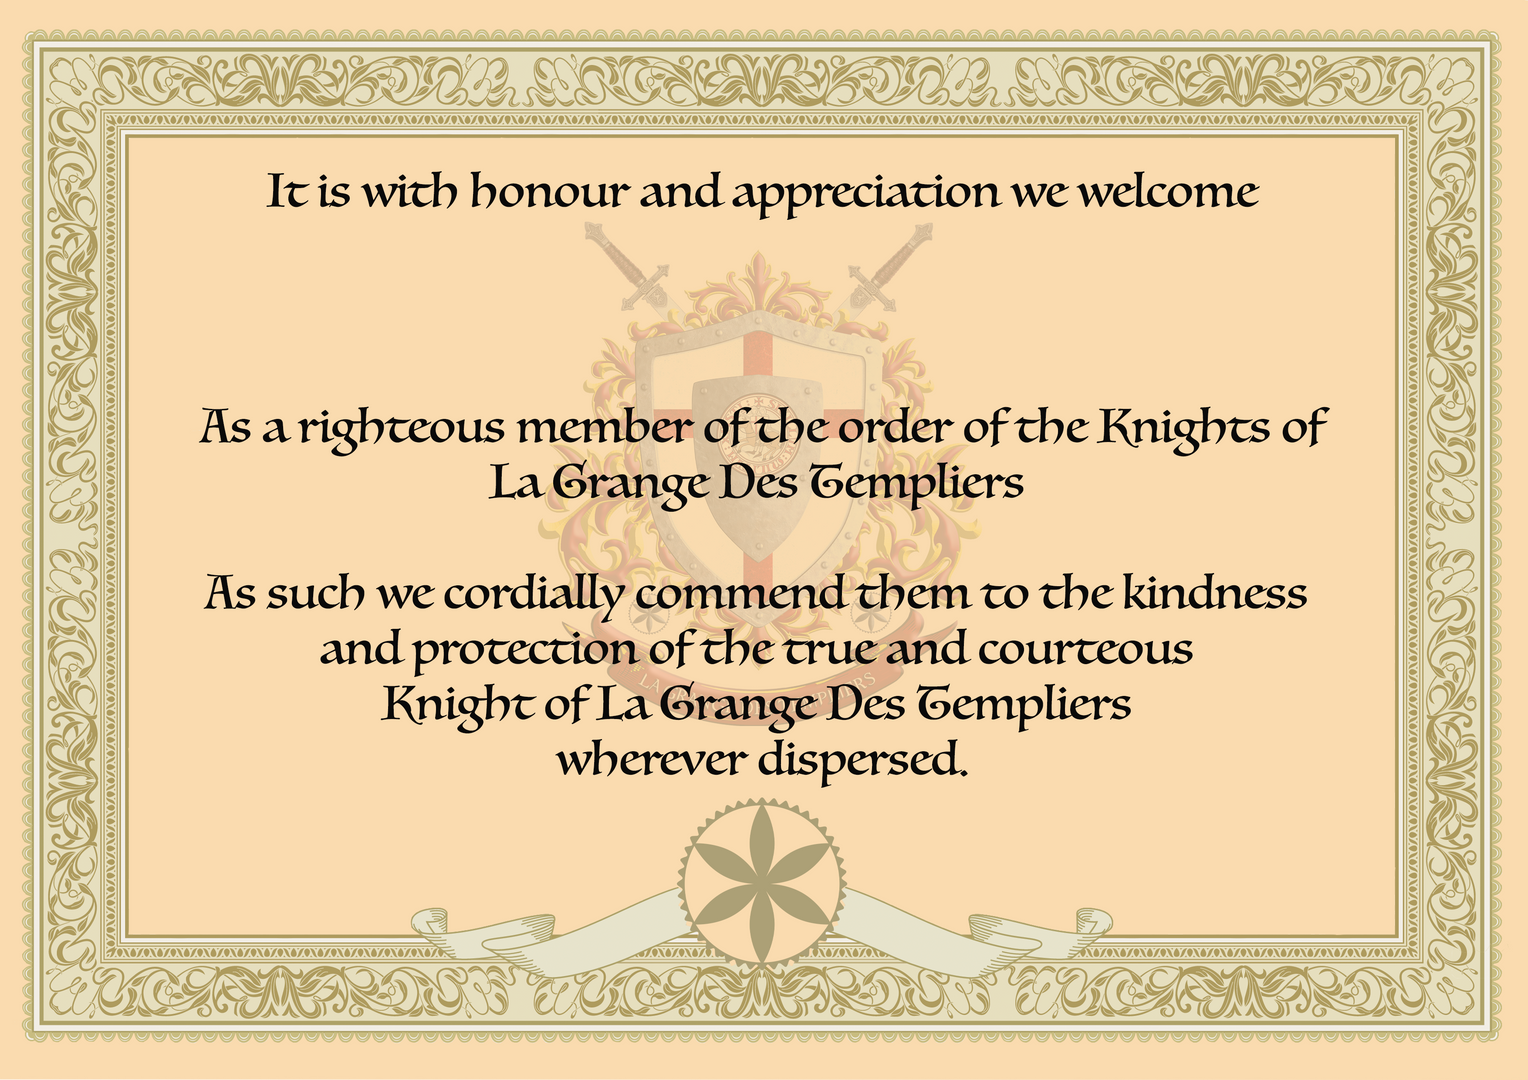 Certificate of Knighthood.